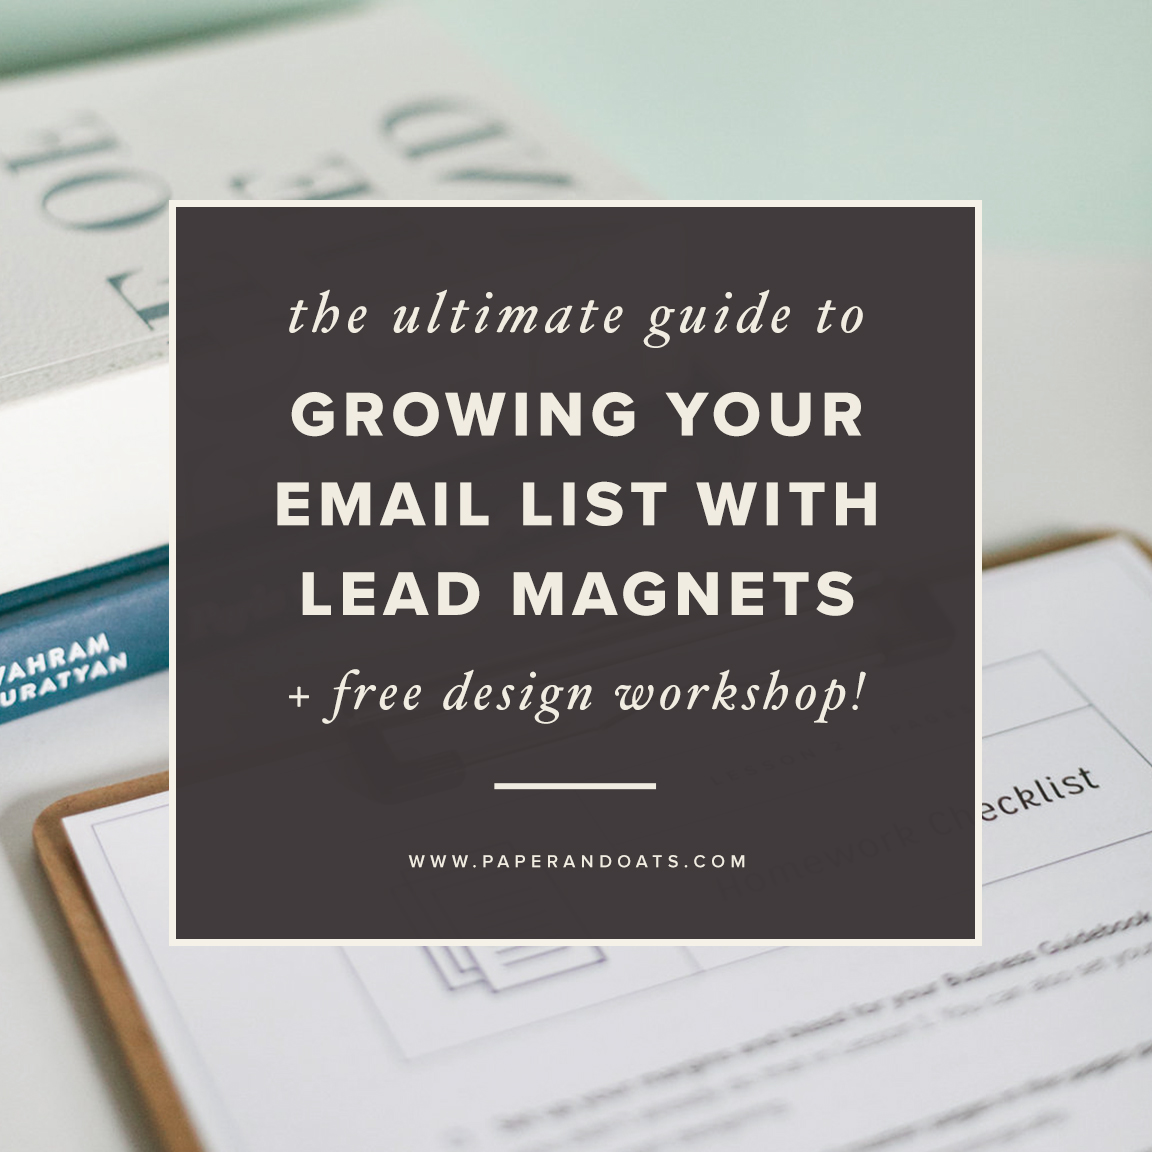 The ultimate guide to growing your email list with lead magnets (+ free design workshop!)